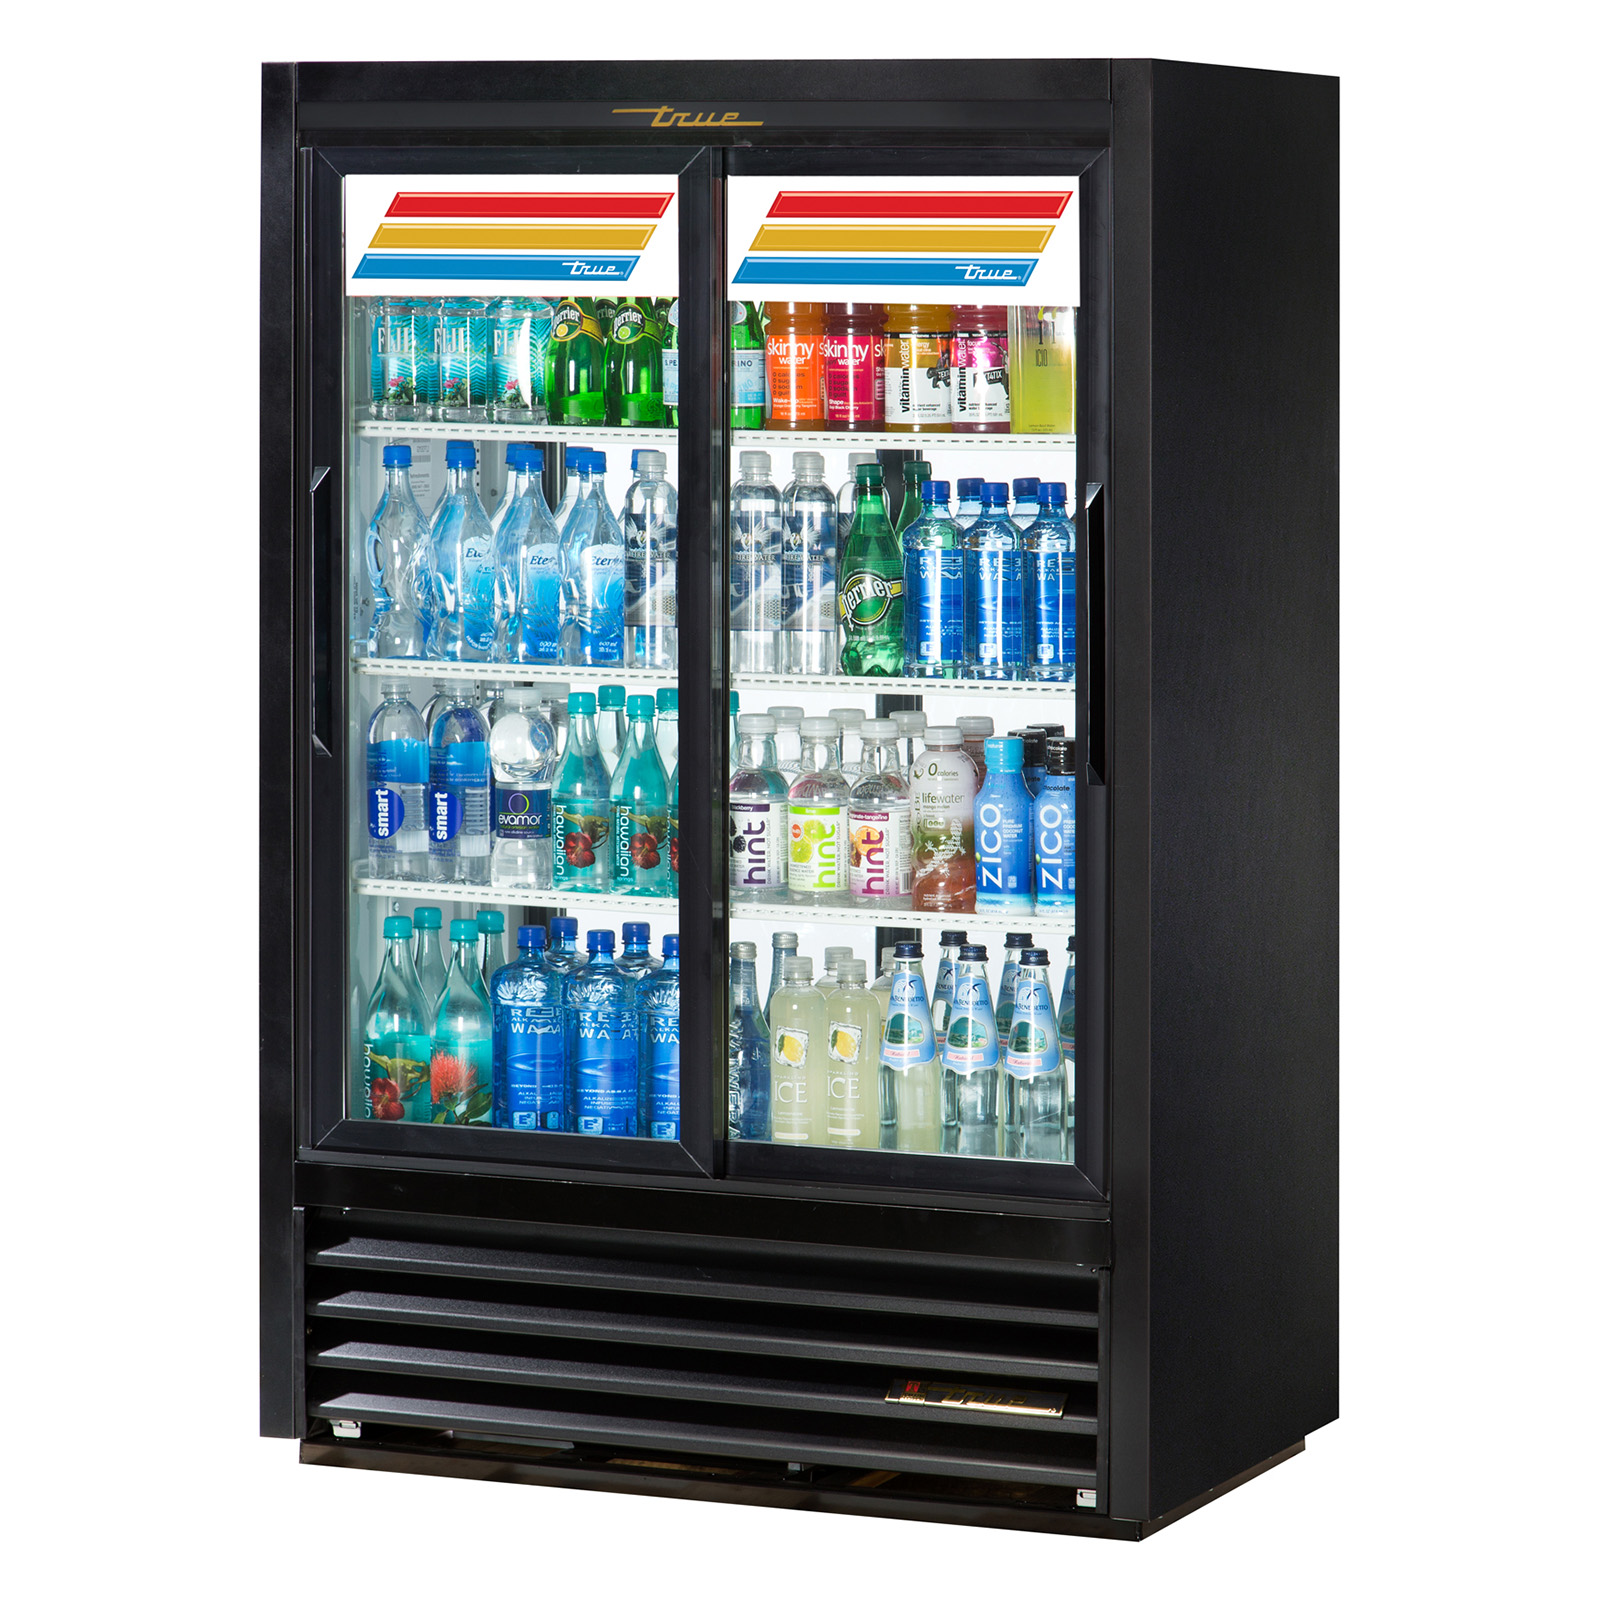 GDM-33CPT-LD True - Convenience Store Cooler Pass-thru